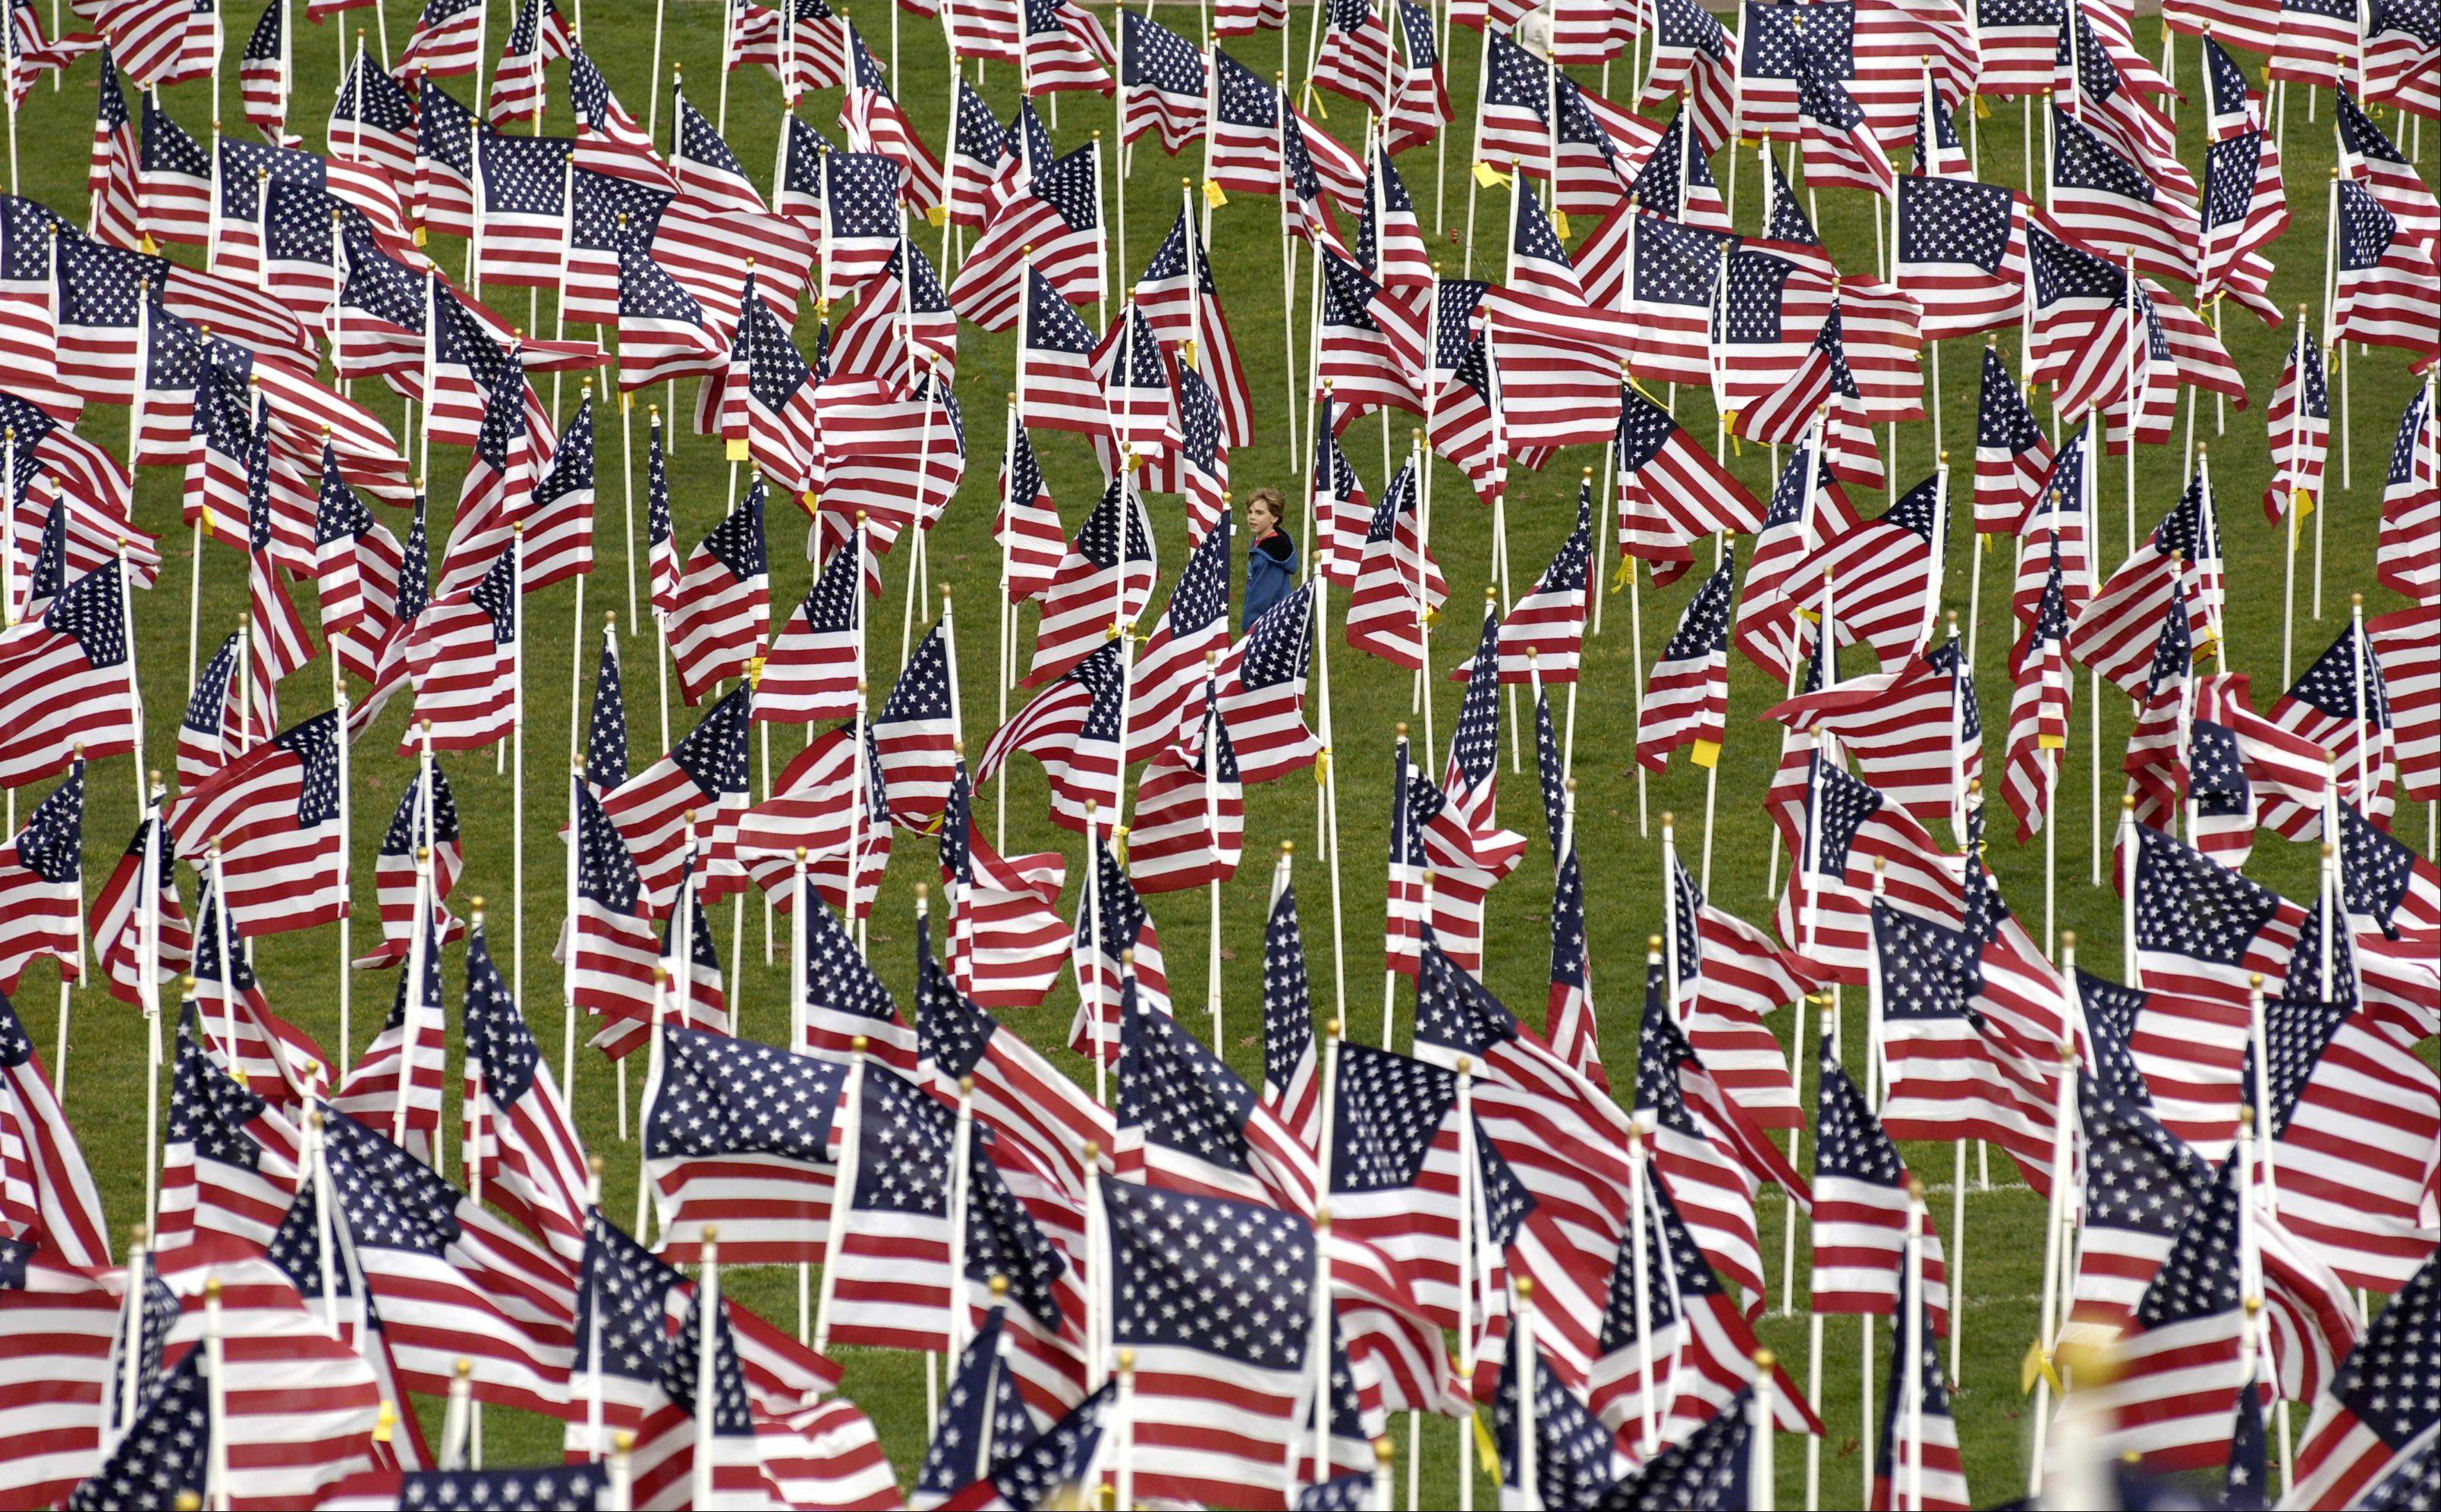 The Naperville Healing Field on Rotary Hill was a sea of red, white and blue Sunday as the city honored veterans with a Veteran�s Day Ceremony in 2012.